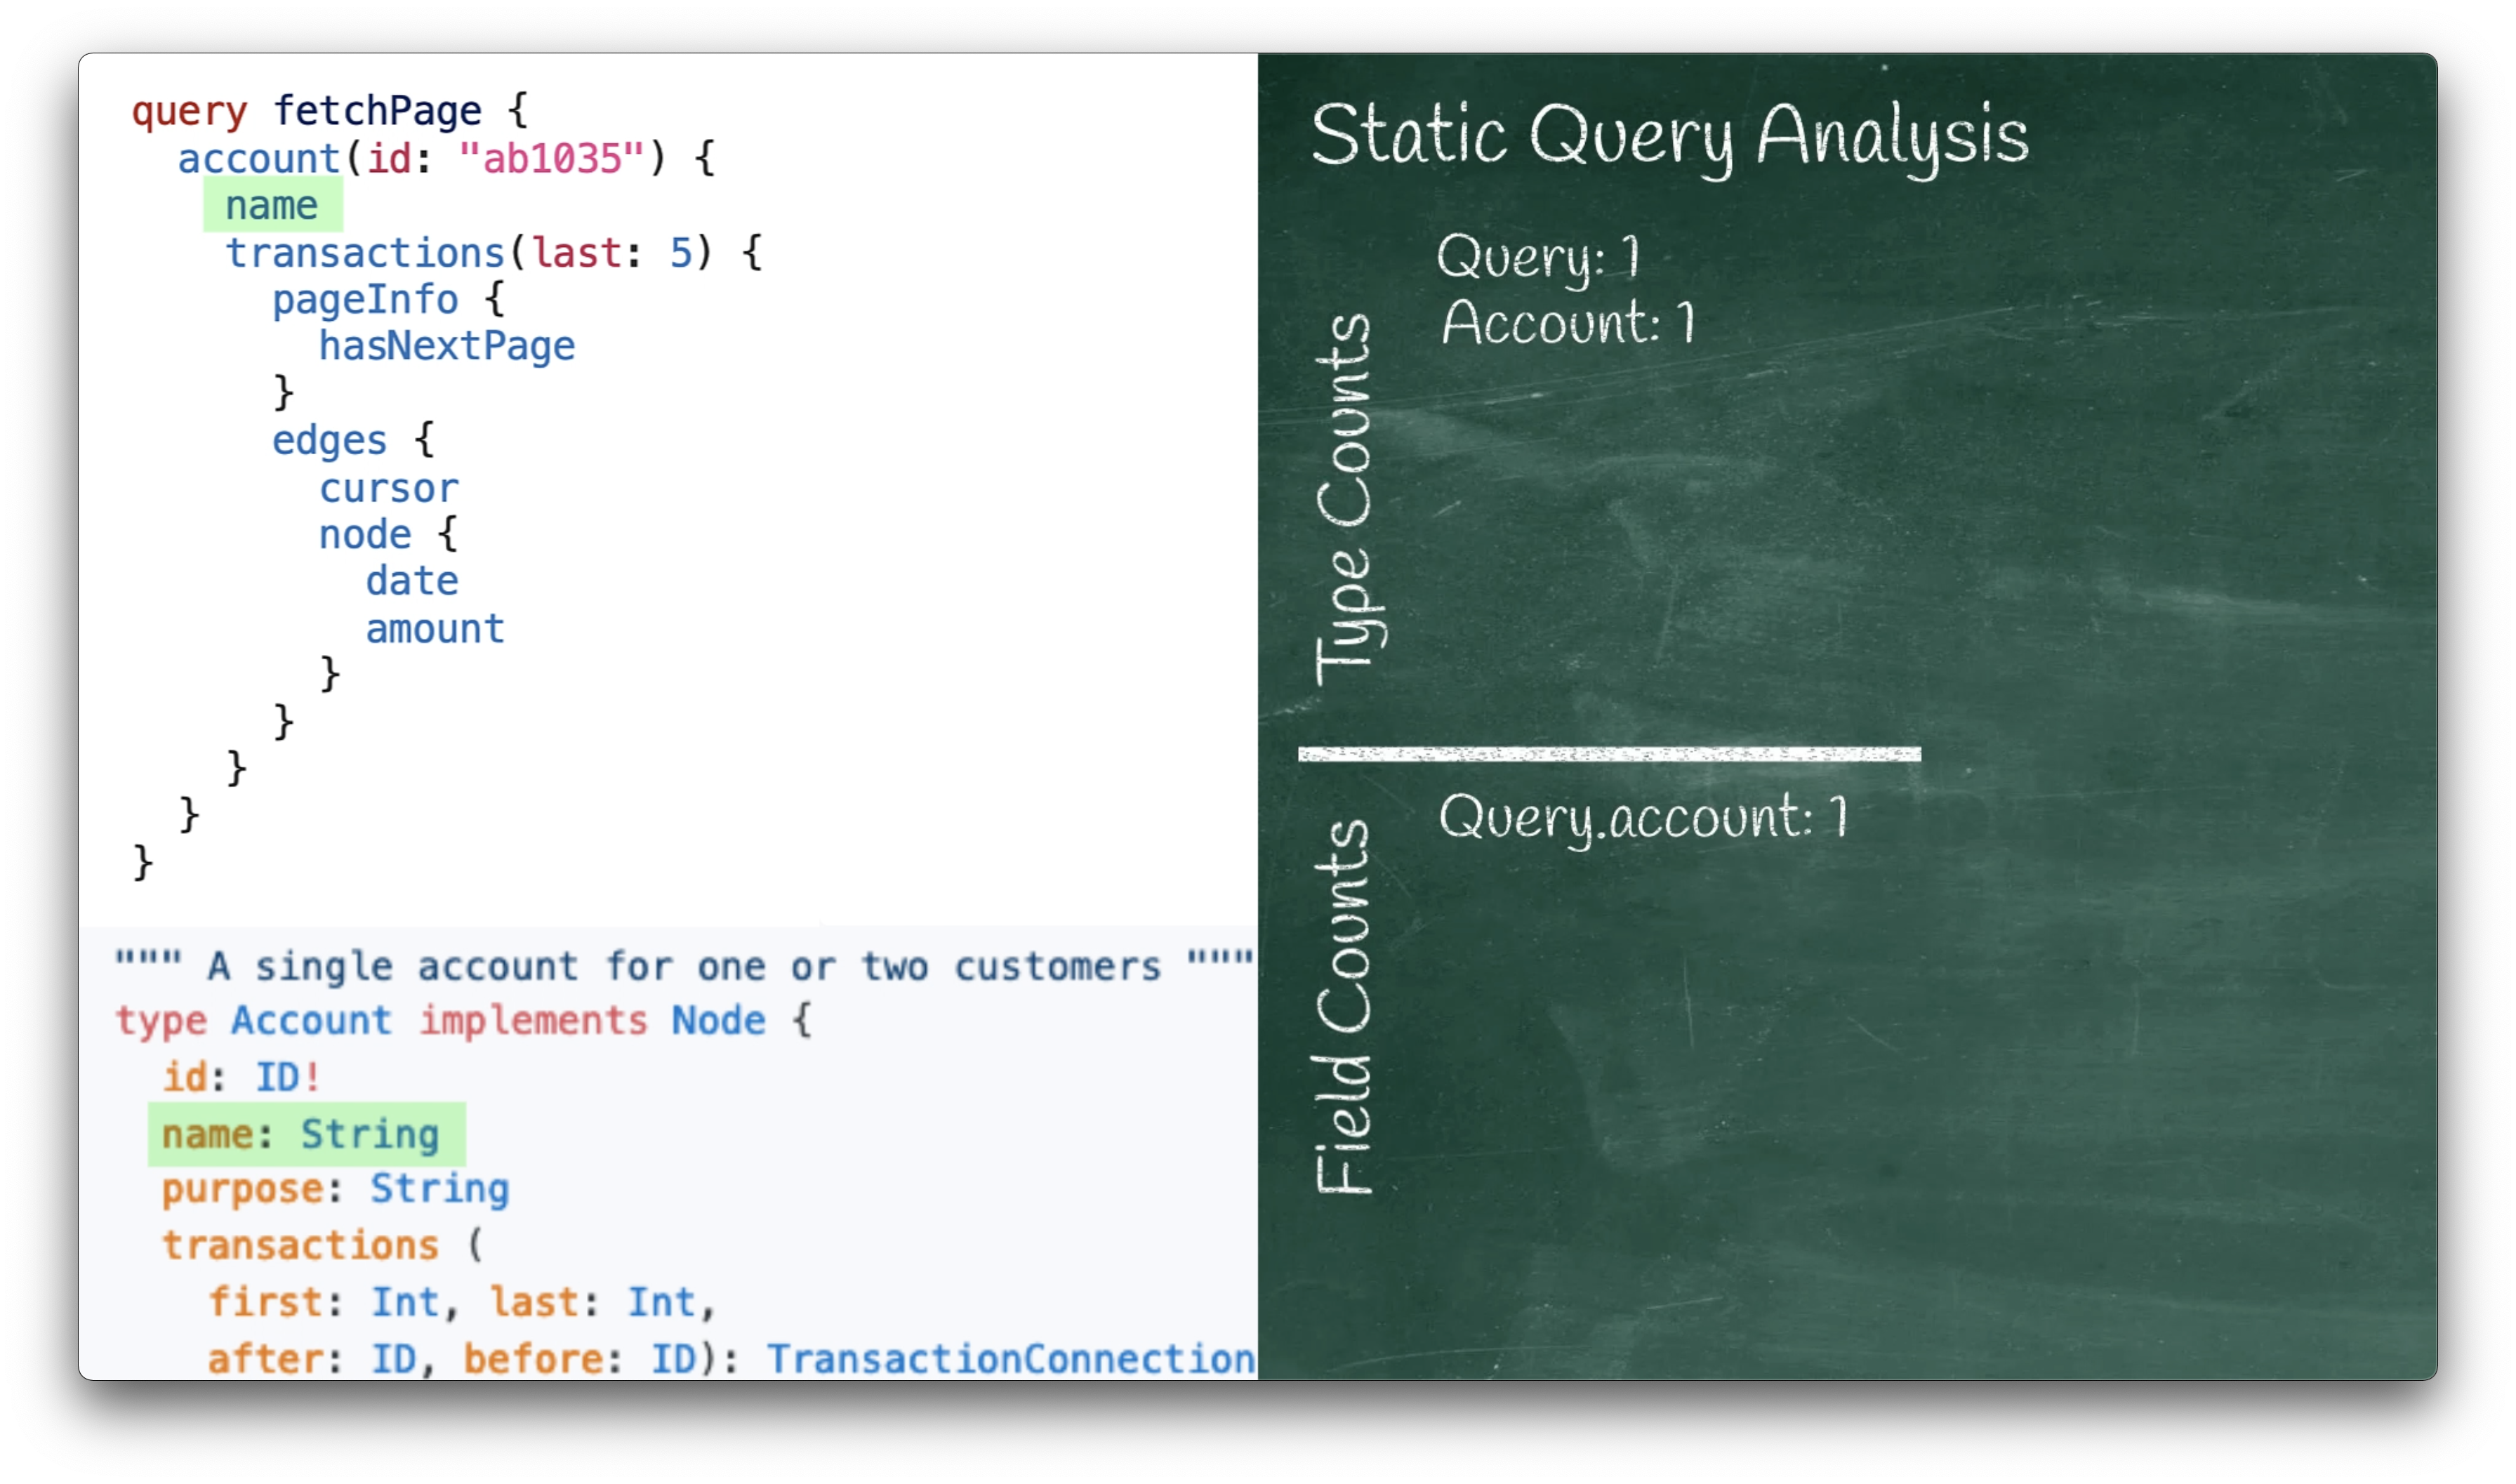 Static Query Analysis Timestep 3